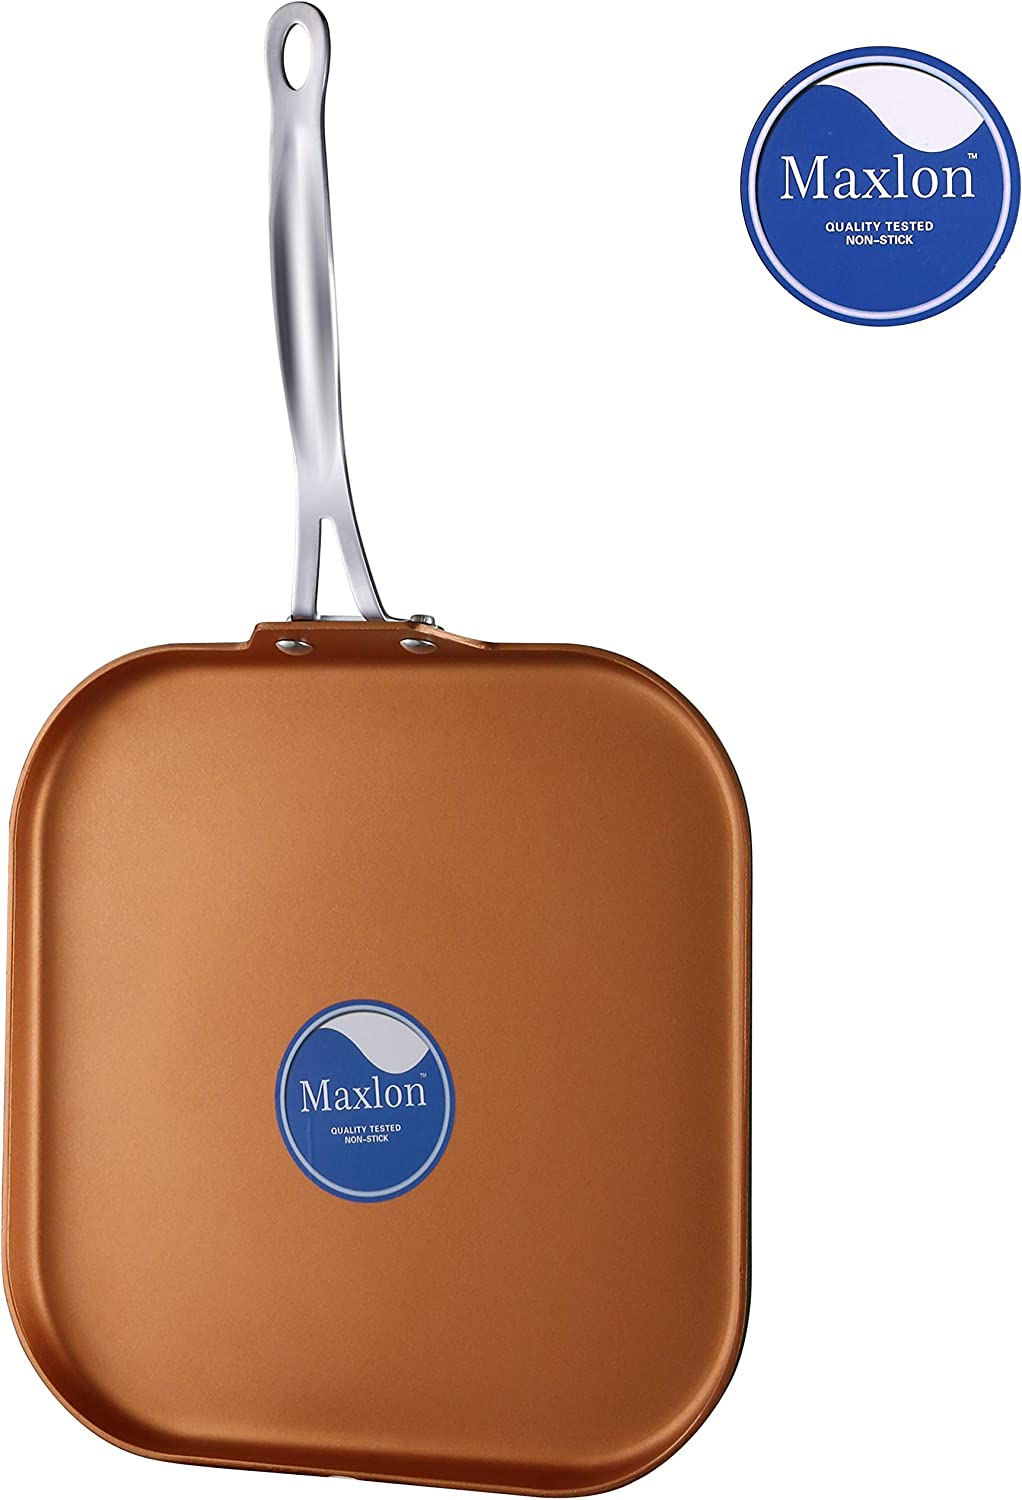 Cooksmark Copper Pan 11-Inch Nonstick Copper Ceramic Griddle Pan with Stainless Steel Handle, Dishwasher Safe Oven Safe PTFE, PFOA Free